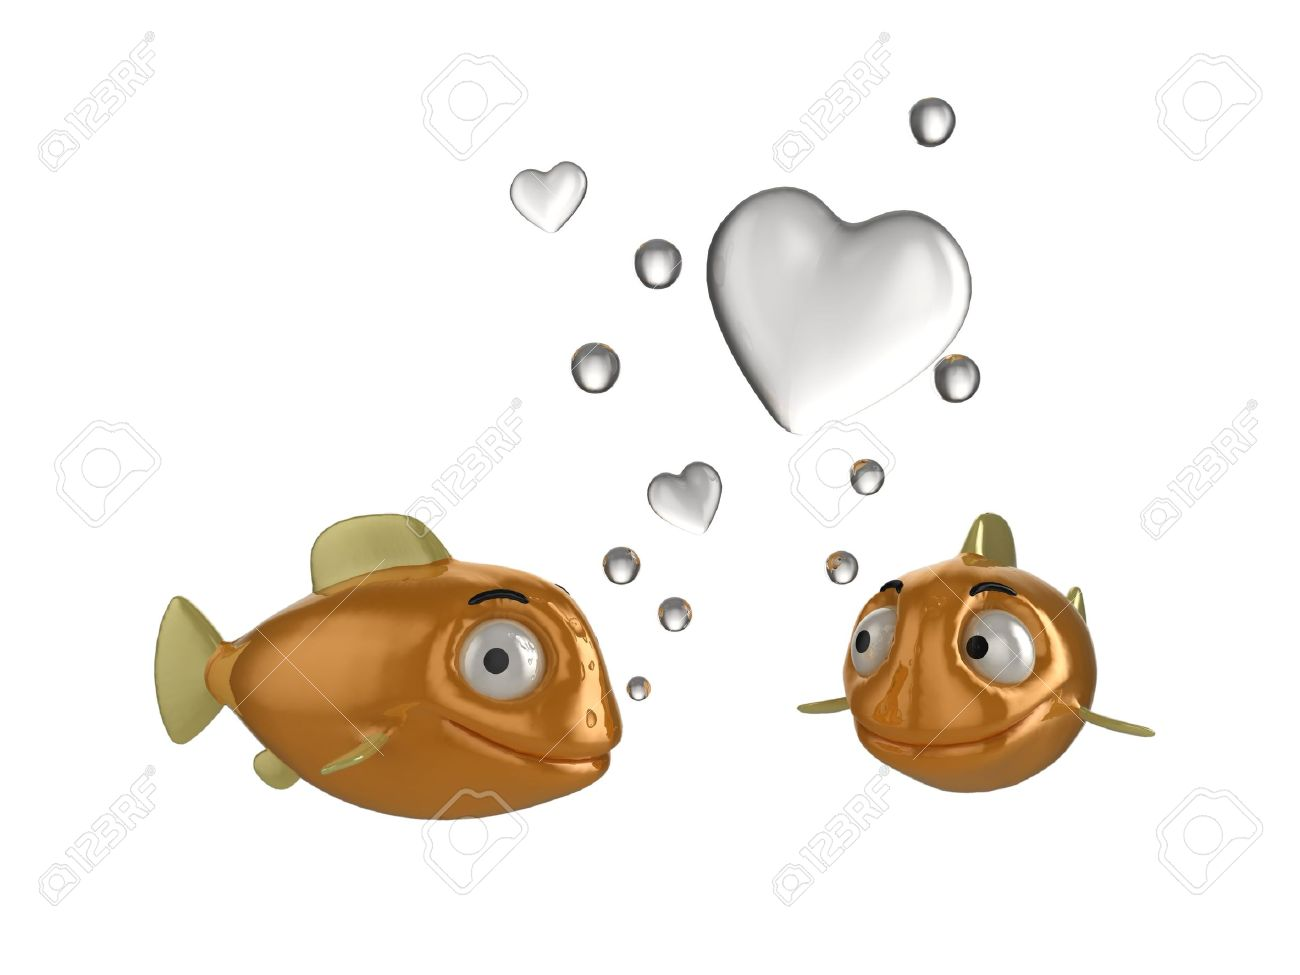 Close up of goldfish in love illustration. Two fish blowing heart shaped bubbles. See my portfolio for alternative views. Stock Illustration - 5664597